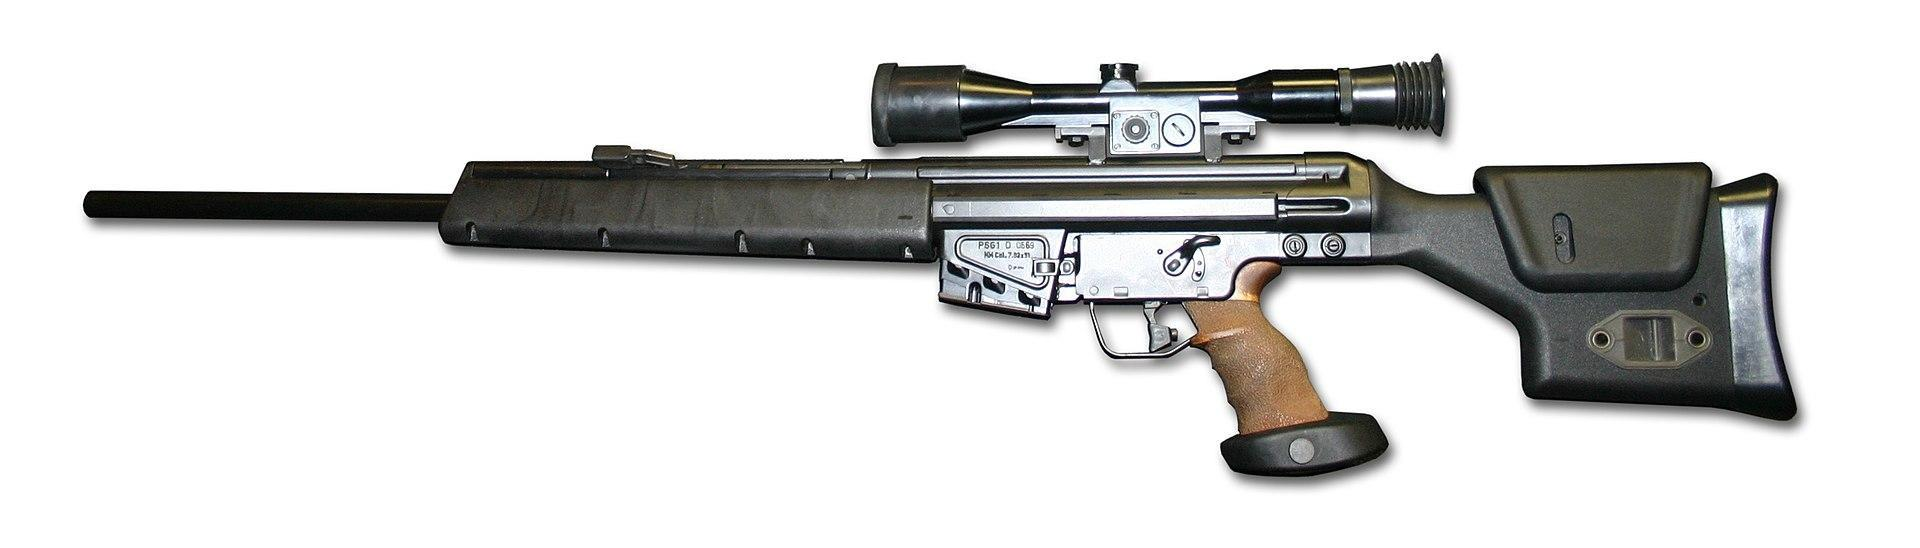 Heckler and Koch PSG1 sniper rifle chambered in .308 Winchester